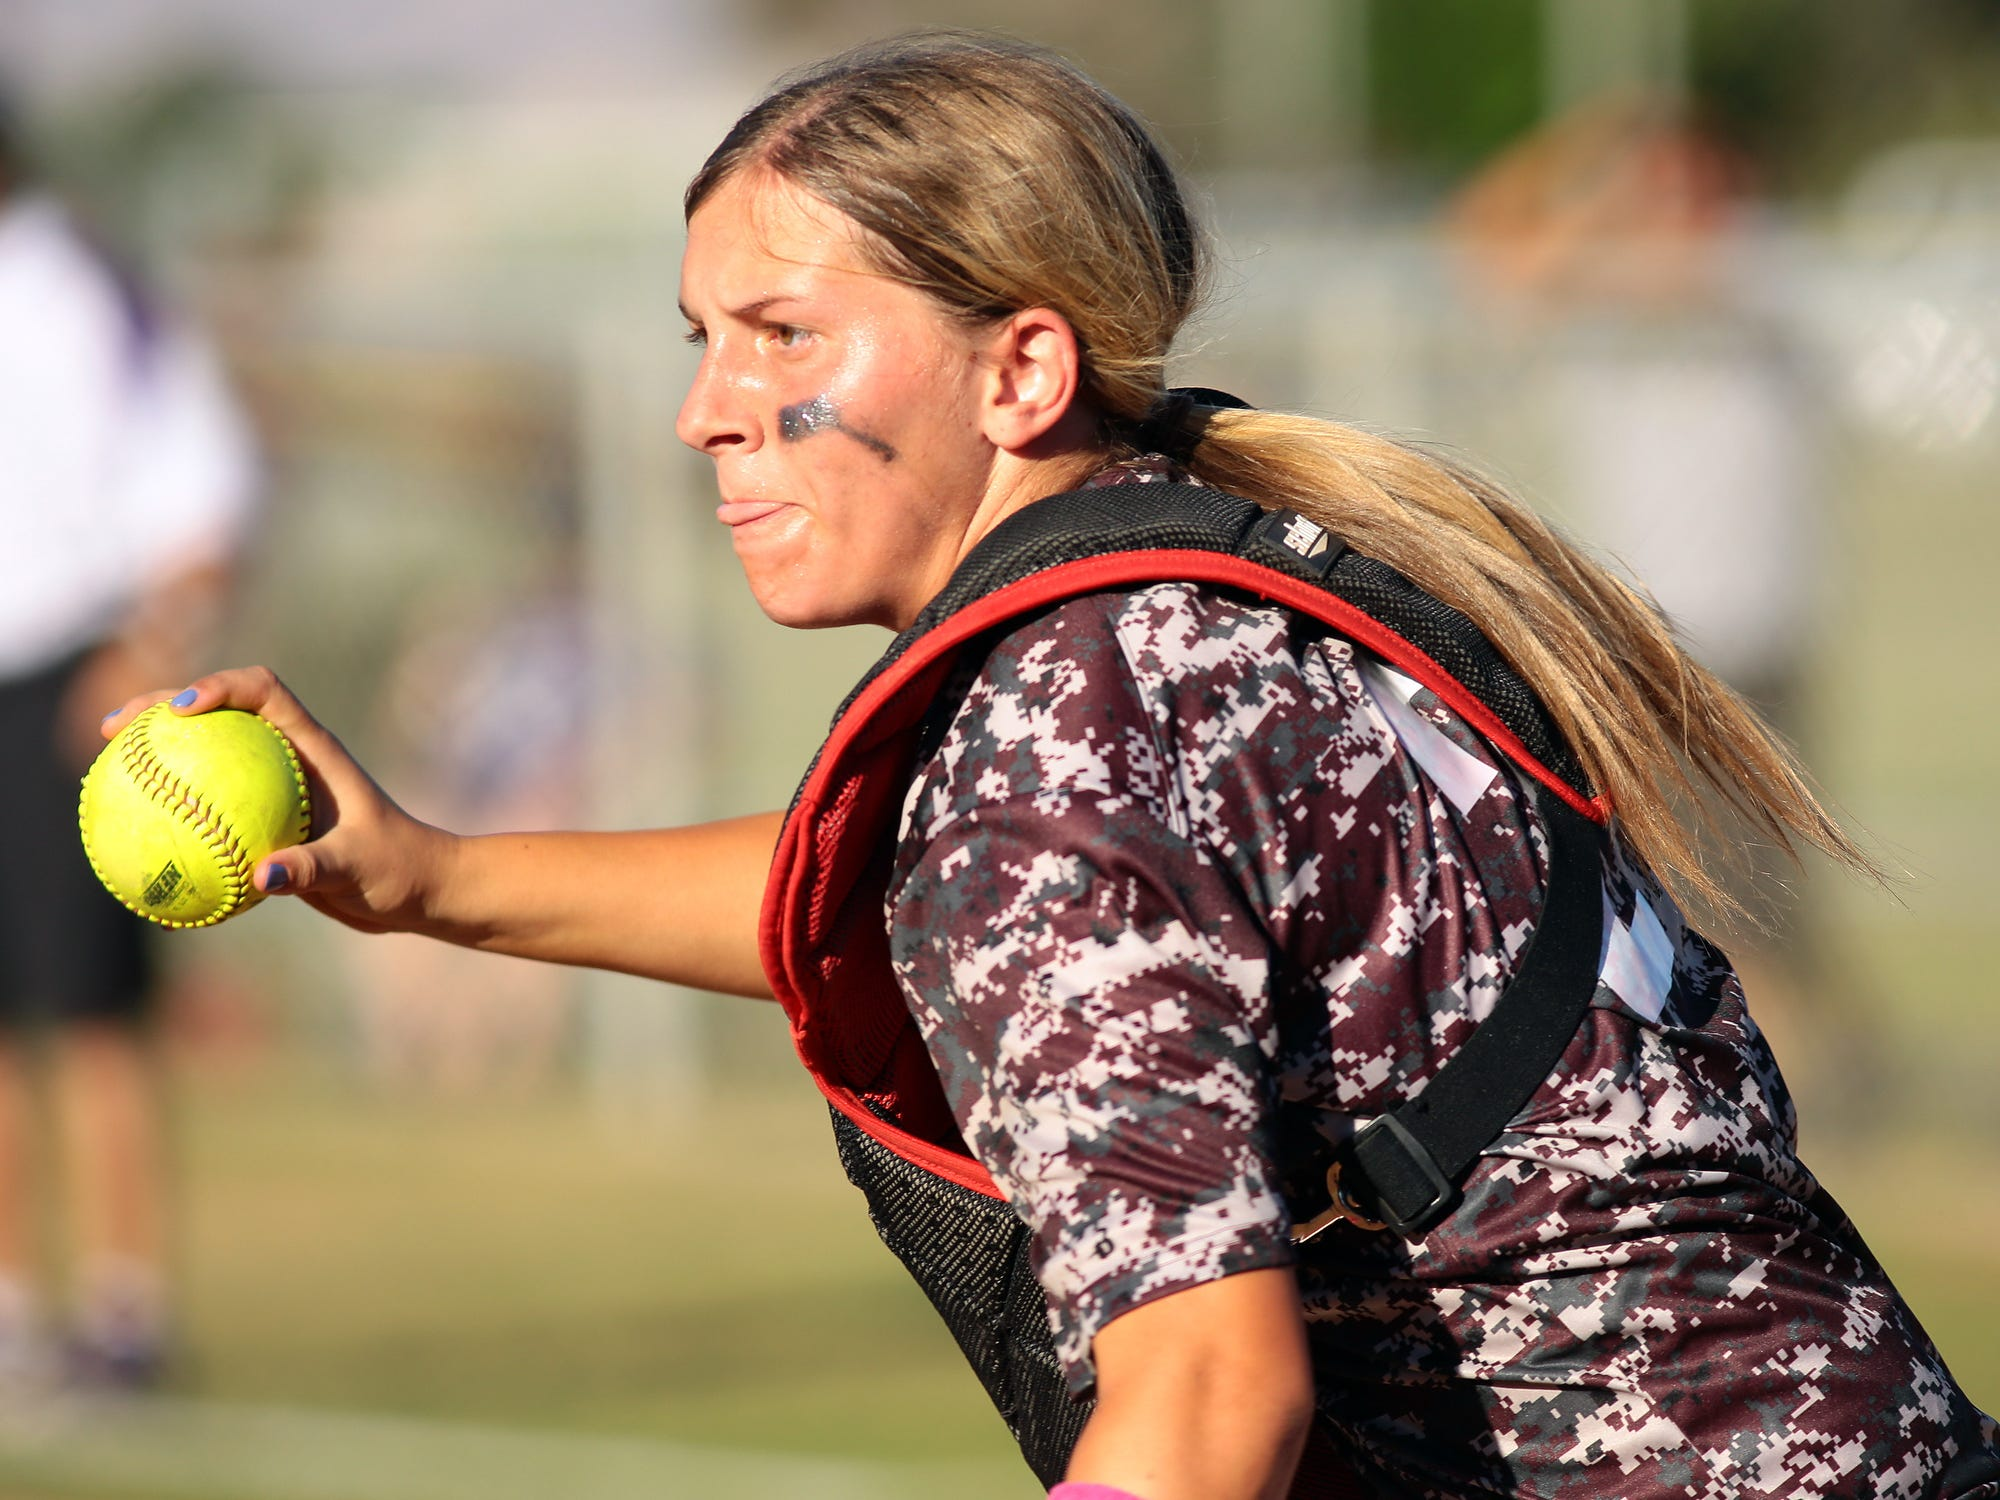 La Quinta catcher Kelli Finan runs up the third base line to make a play against Shadow Hills on Thursday afternoon, March 26, 2015 during a game at La Quinta High School. La Quinta won the first game 7-5 and took another win 4-1.